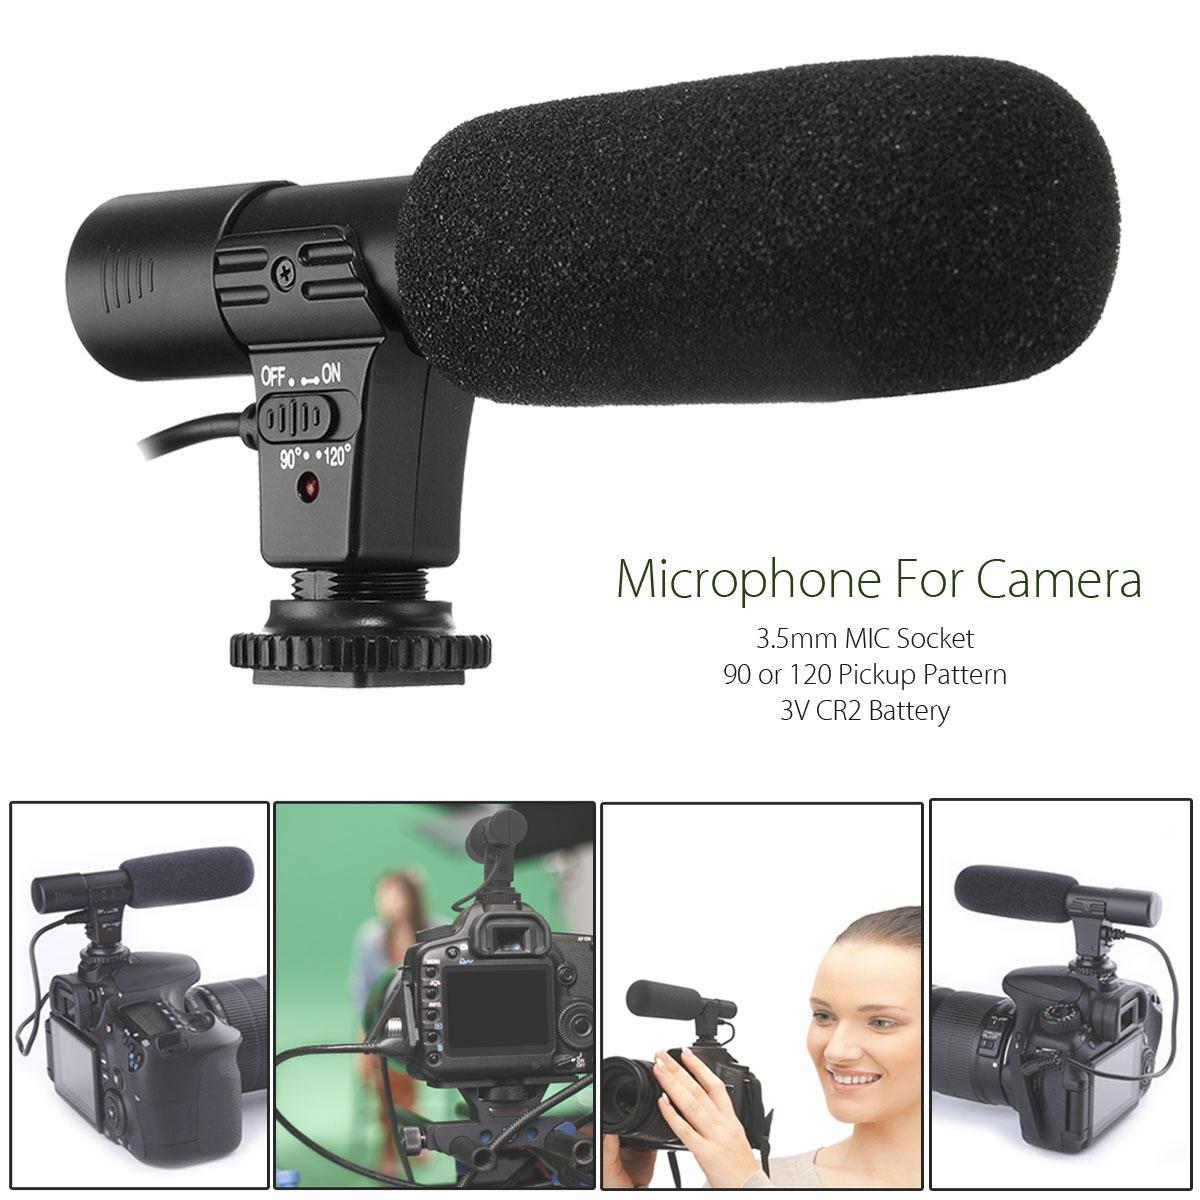 【free Shipping + Flash Deal】3.5mm Direction External Microphone For Canon Nikon Dslr Camera Dv Camcorder - Intl By Freebang.